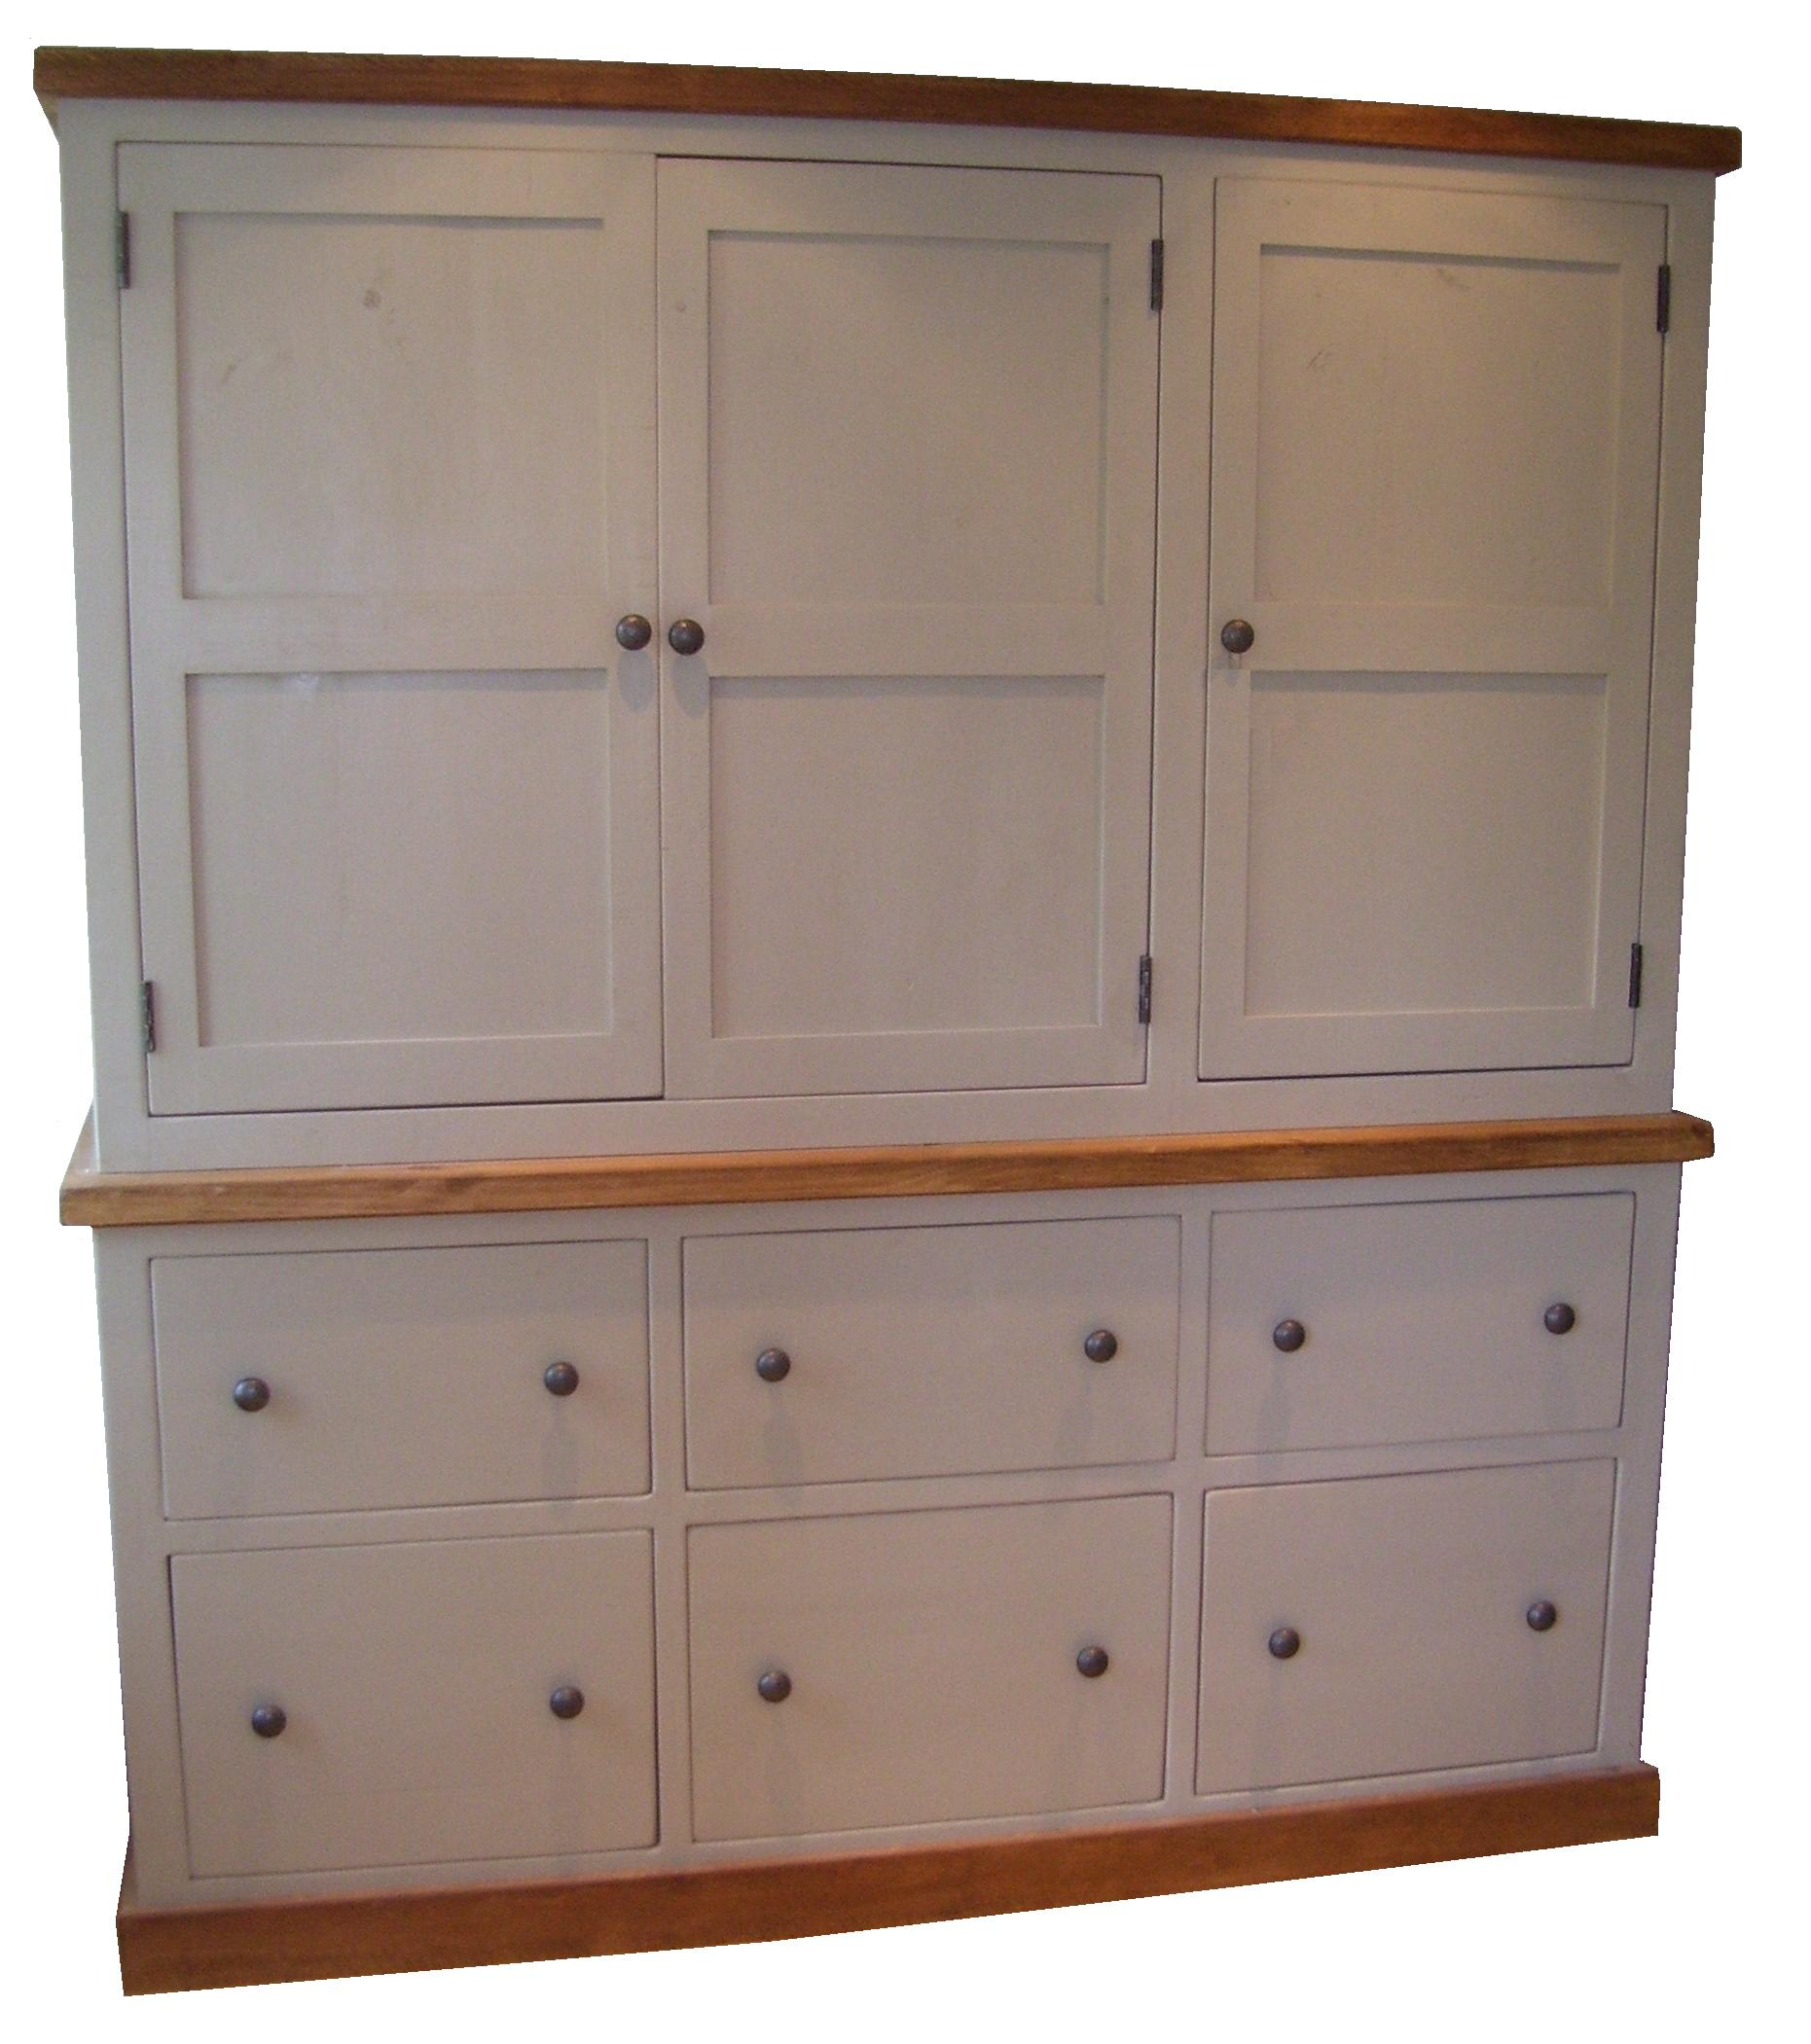 Luxurious oak kitchen larder cabinet sustainable for Oak kitchen larder units